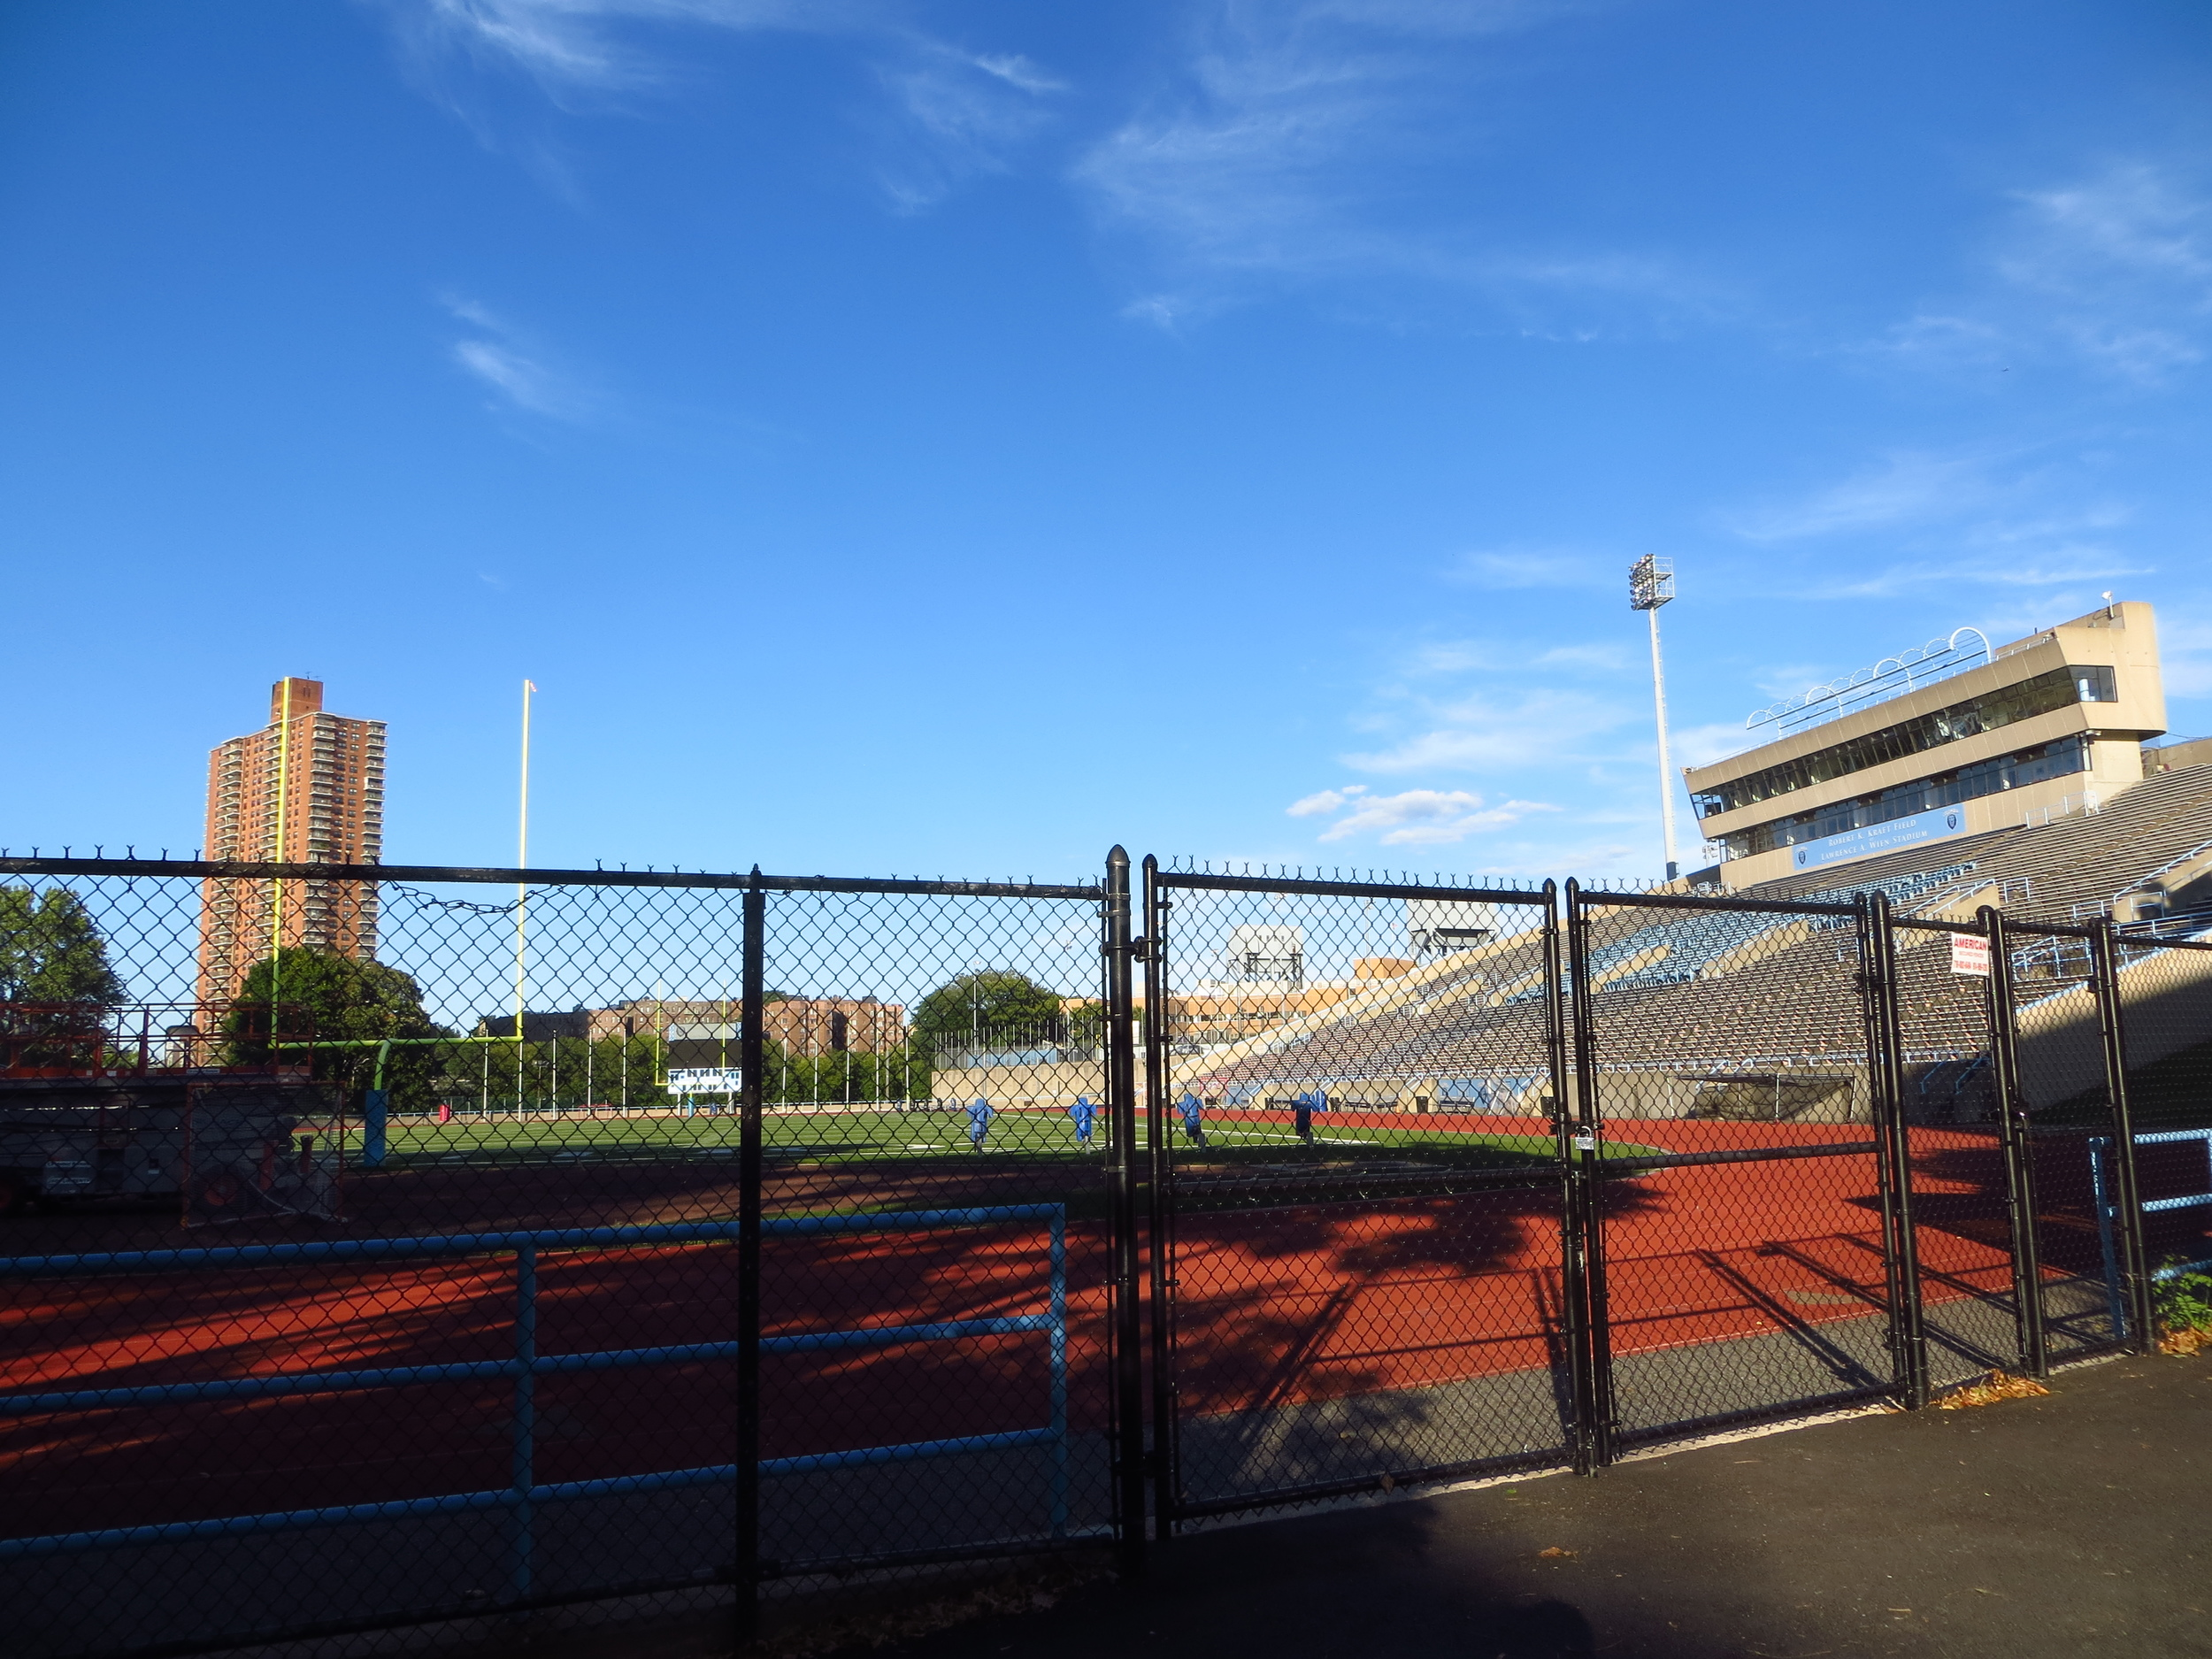 This is where Columbia loses football games (0-10 in 2013)